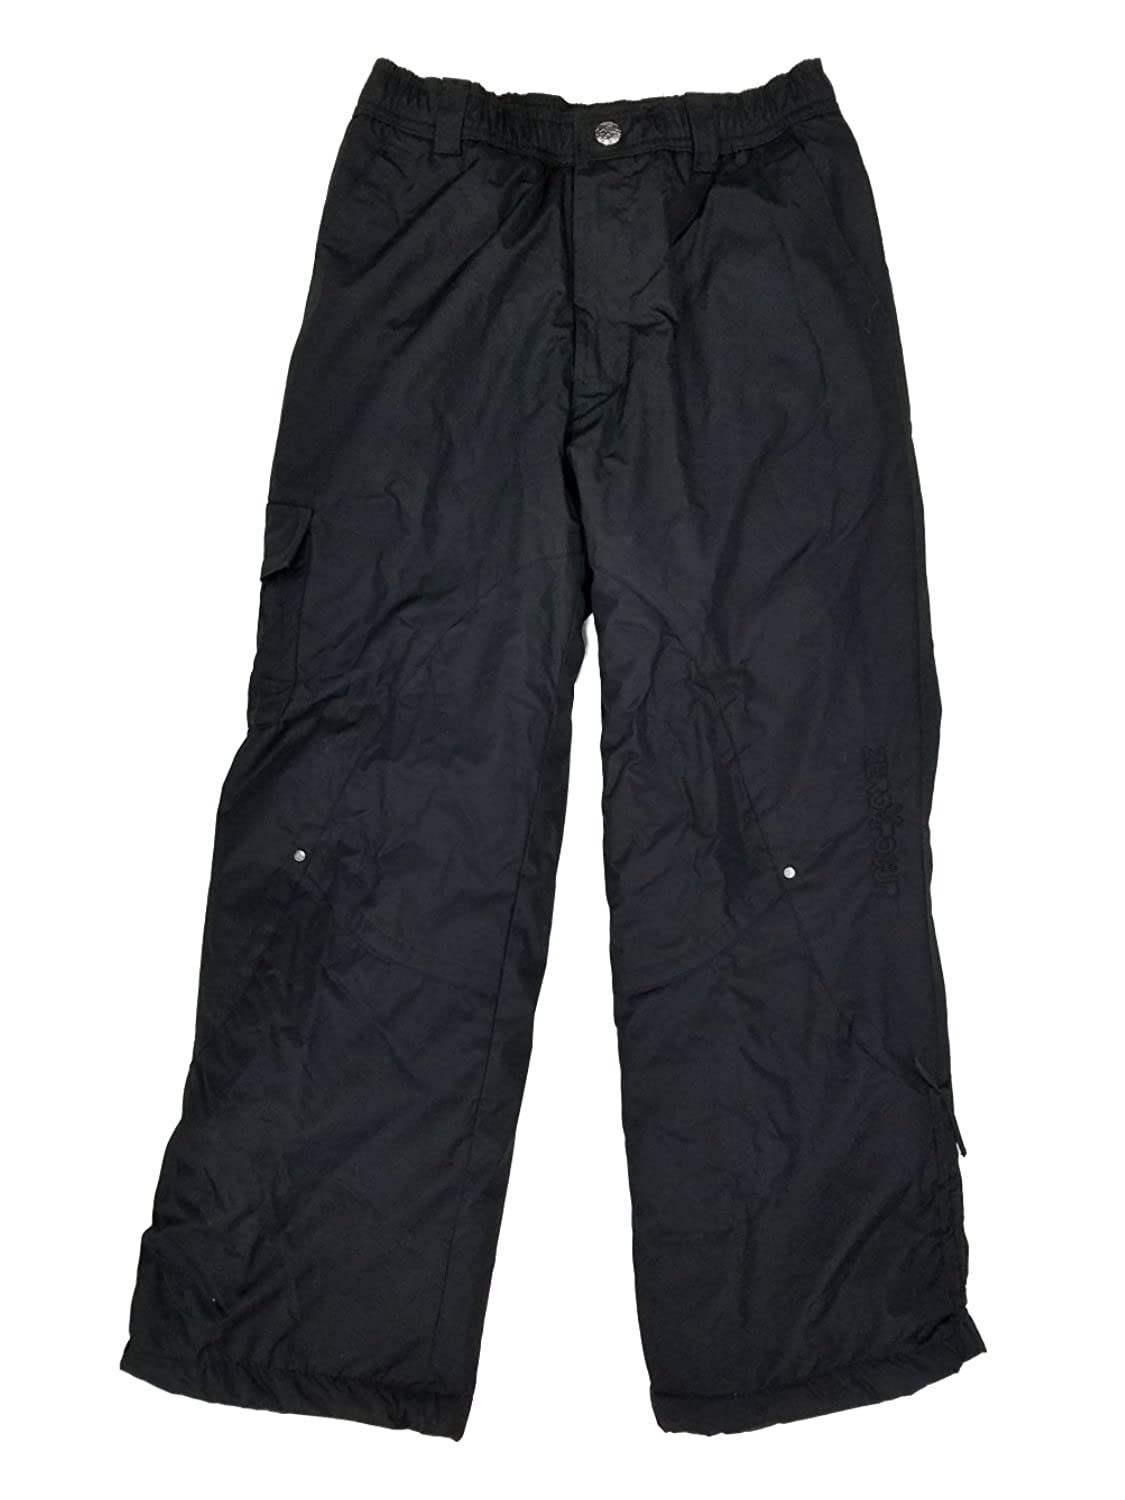 ZeroXposur Girls Black Water/Wind Resistant Insulated Cargo Snow Pants